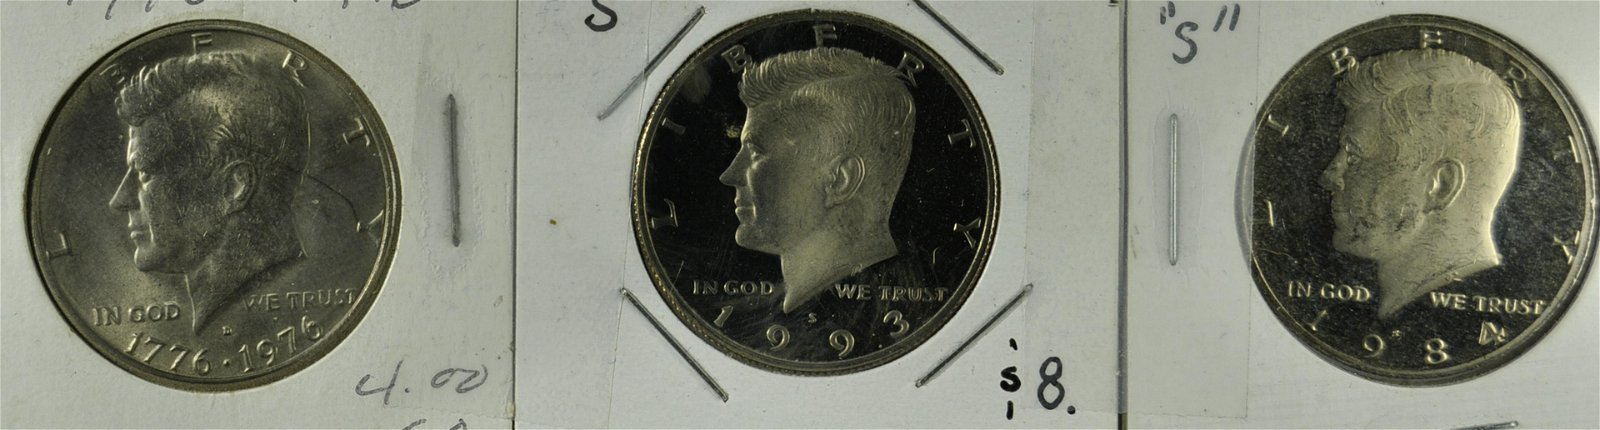 2 Kennedy Proofs and 1 MS